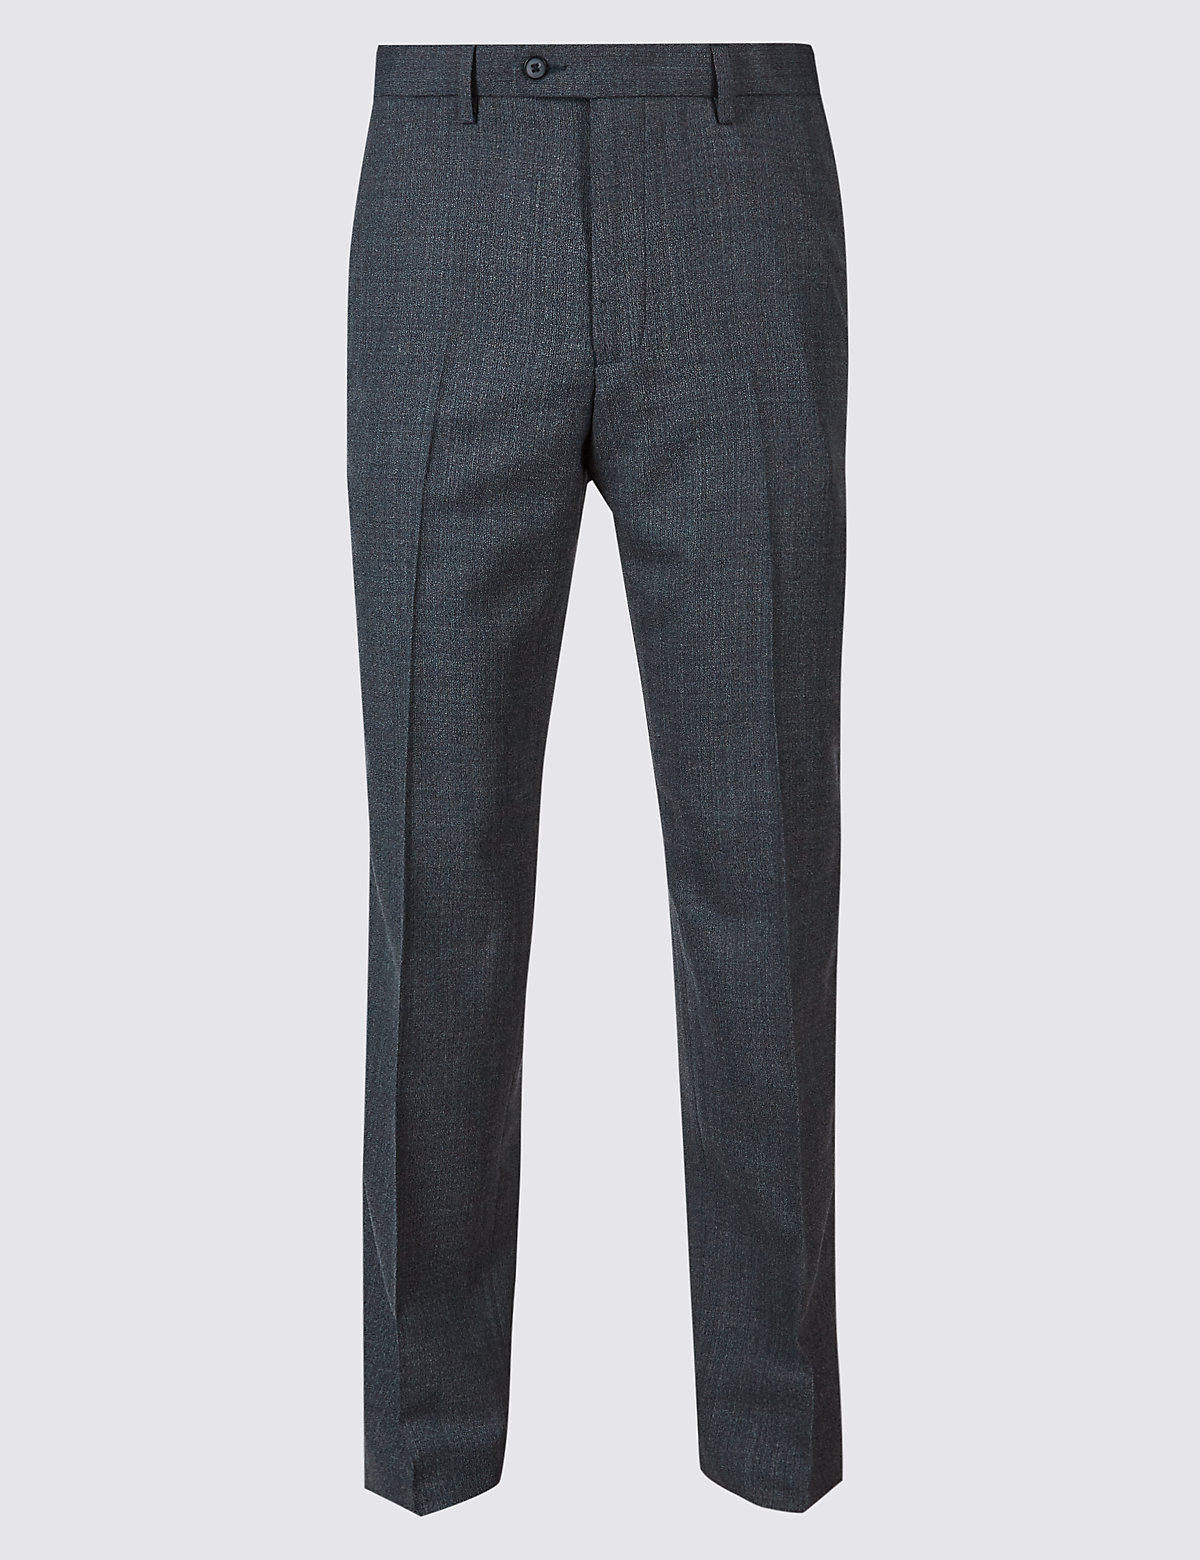 Marks & Spencer Navy Tailored Fit Wool Blend Flat Front Trousers